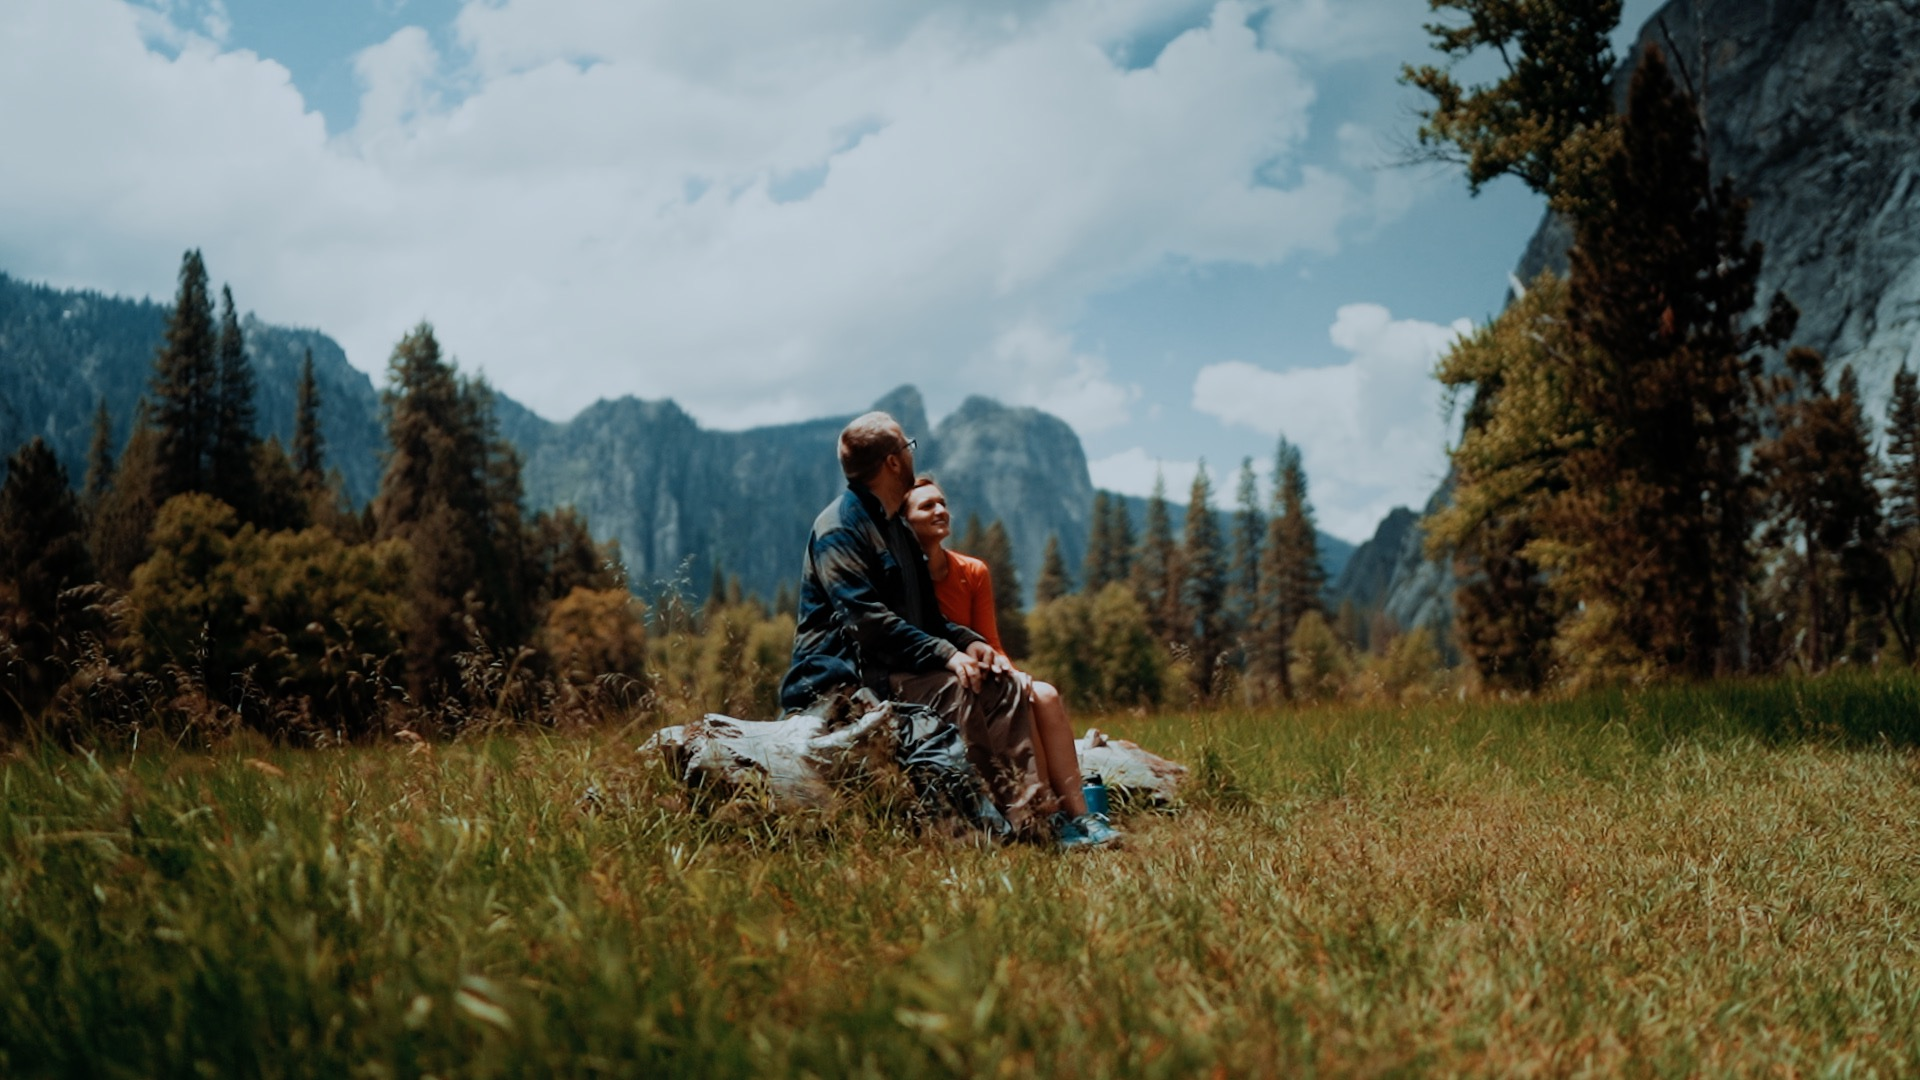 Julie + Josh | Yosemite Valley, California | yosemite bug